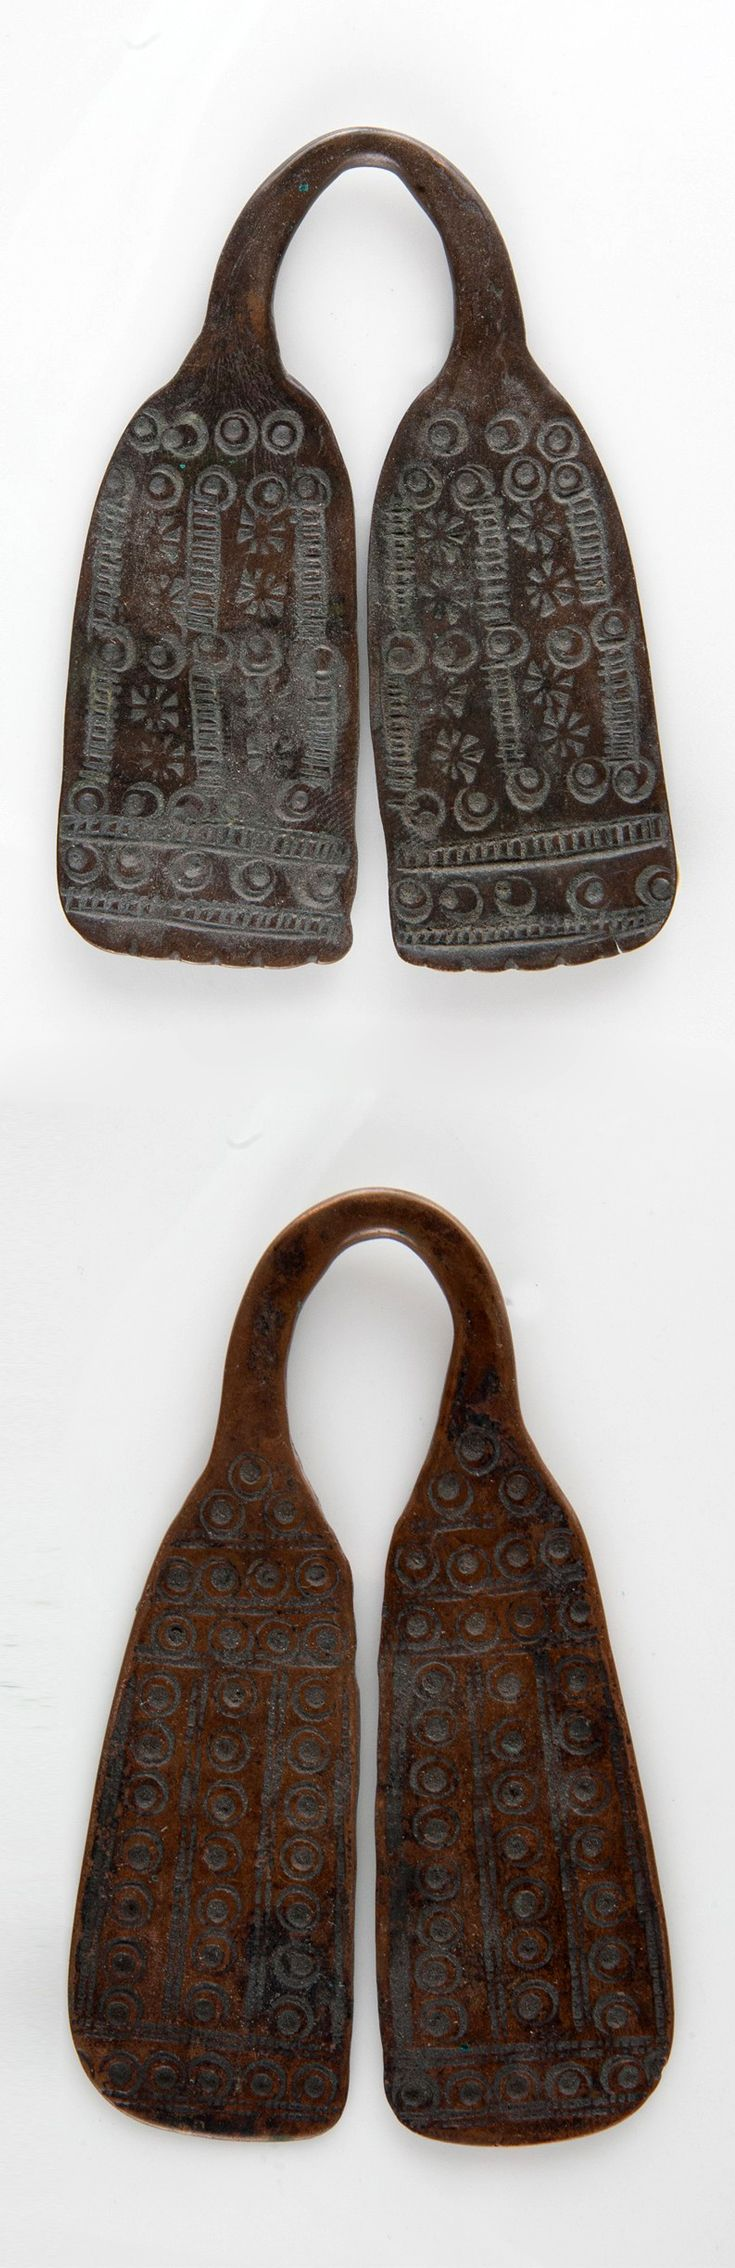 Ethiopia | Two pendants from the Sidamo / Oromo people | Copper | Height: 8 cm & 9 cm